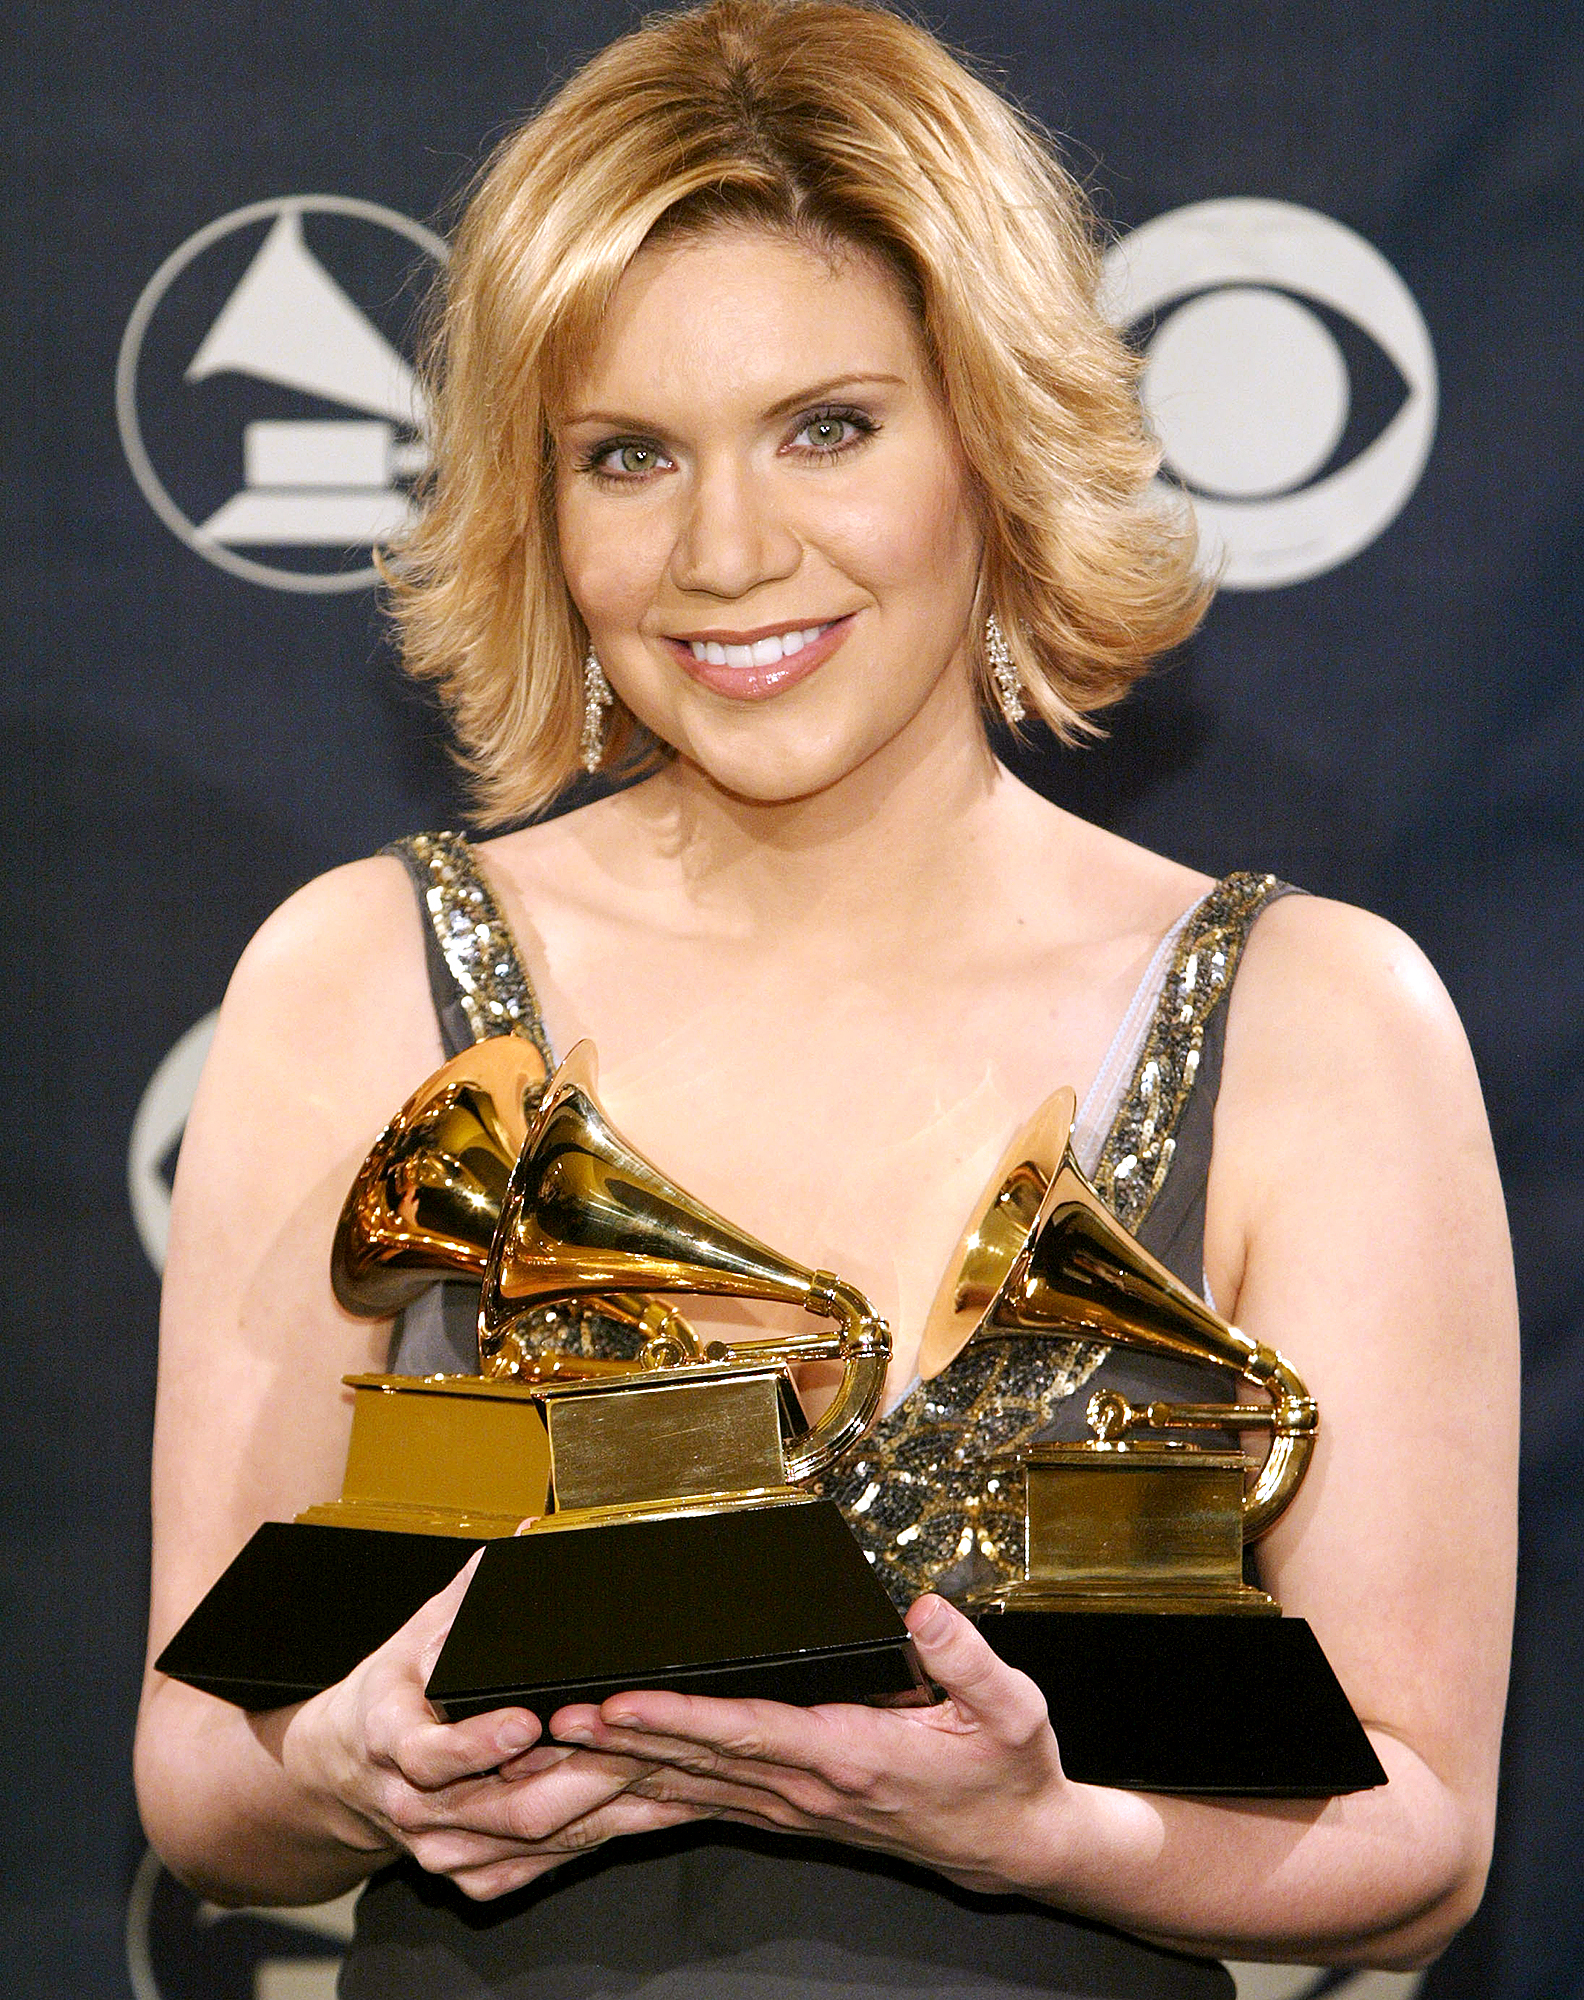 Alison-Krauss-grammy-awards - Country singer and musician Alison Krauss has won 27 Grammys thus far, most recently winning the award for Best Bluegrass Album in 2012 for Paper Airplane .